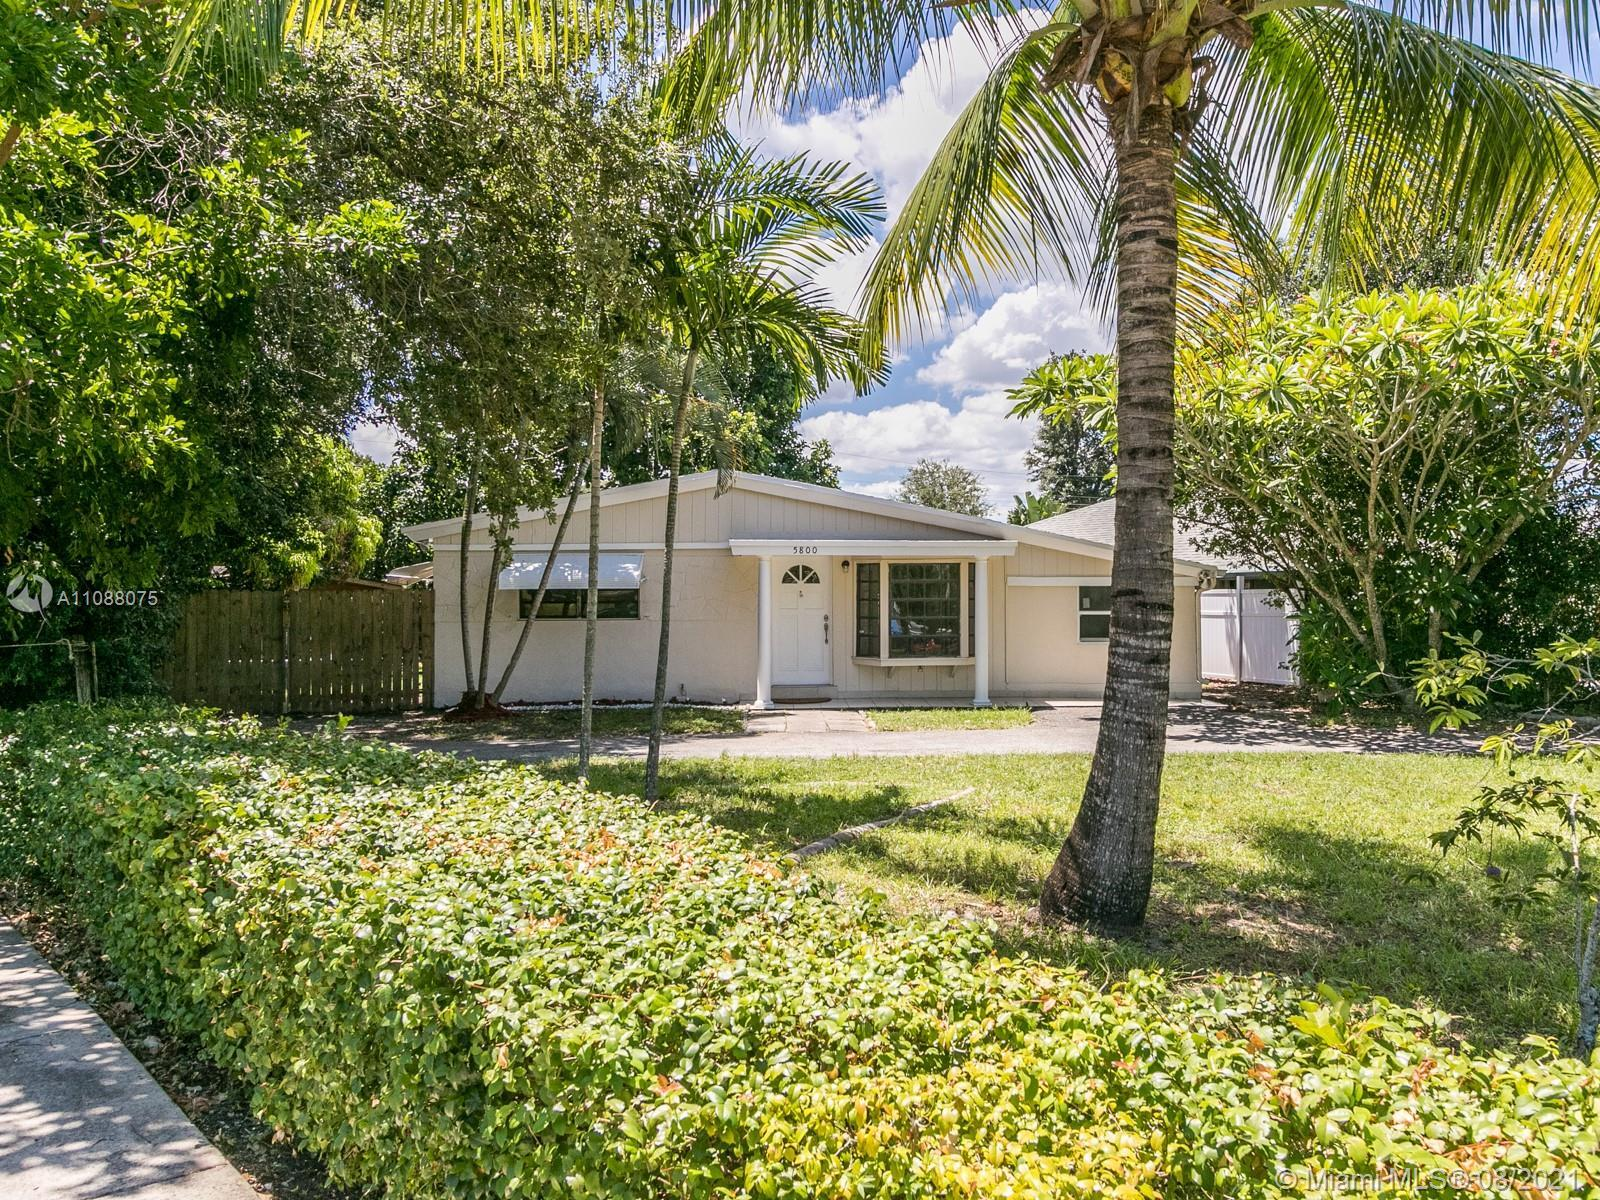 Wonderful income generating property perfect for first time home owners...or even an investor! This